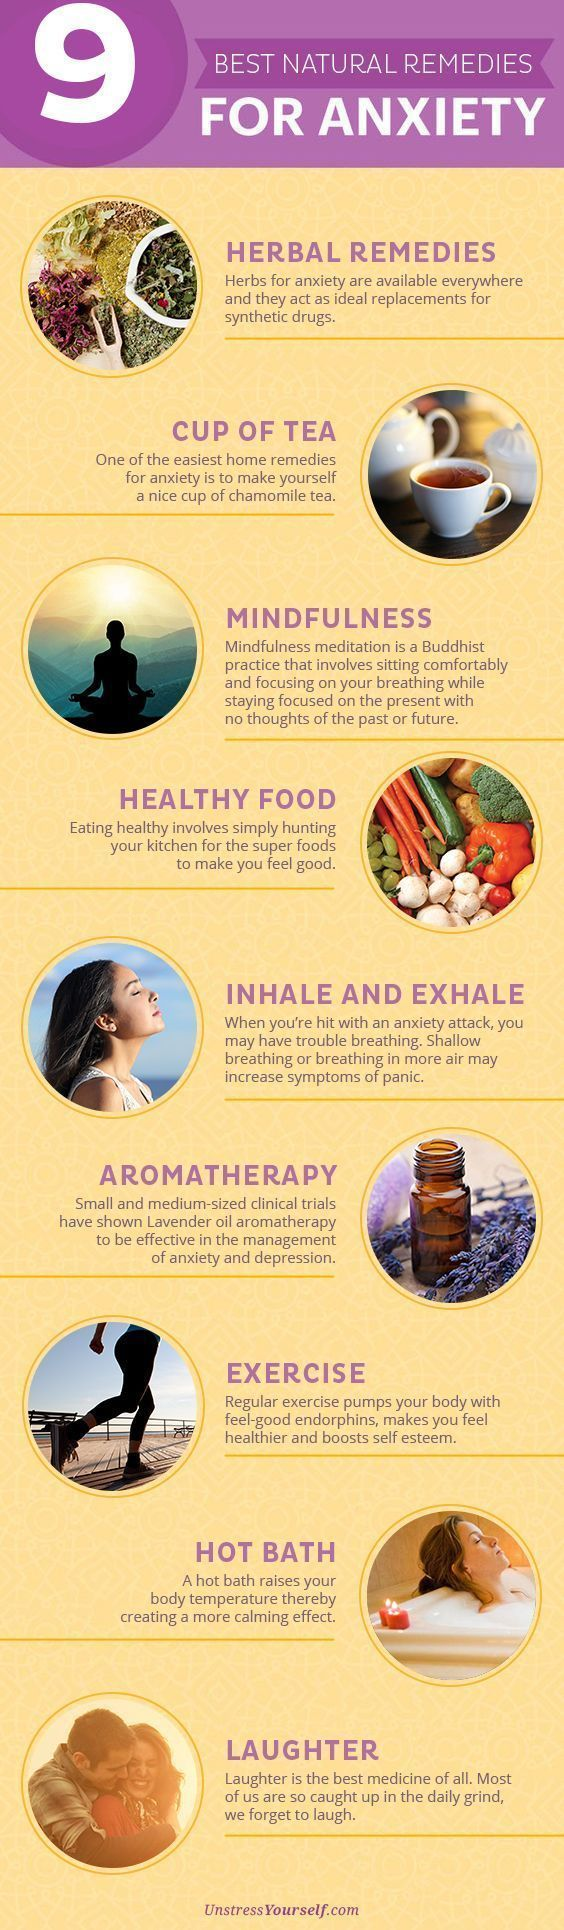 Best Natural Remedies for Anxiety I've recently started drinking Kava tea. I found it at local organic/health food store, it's a Yogi brand tea. I've found it t